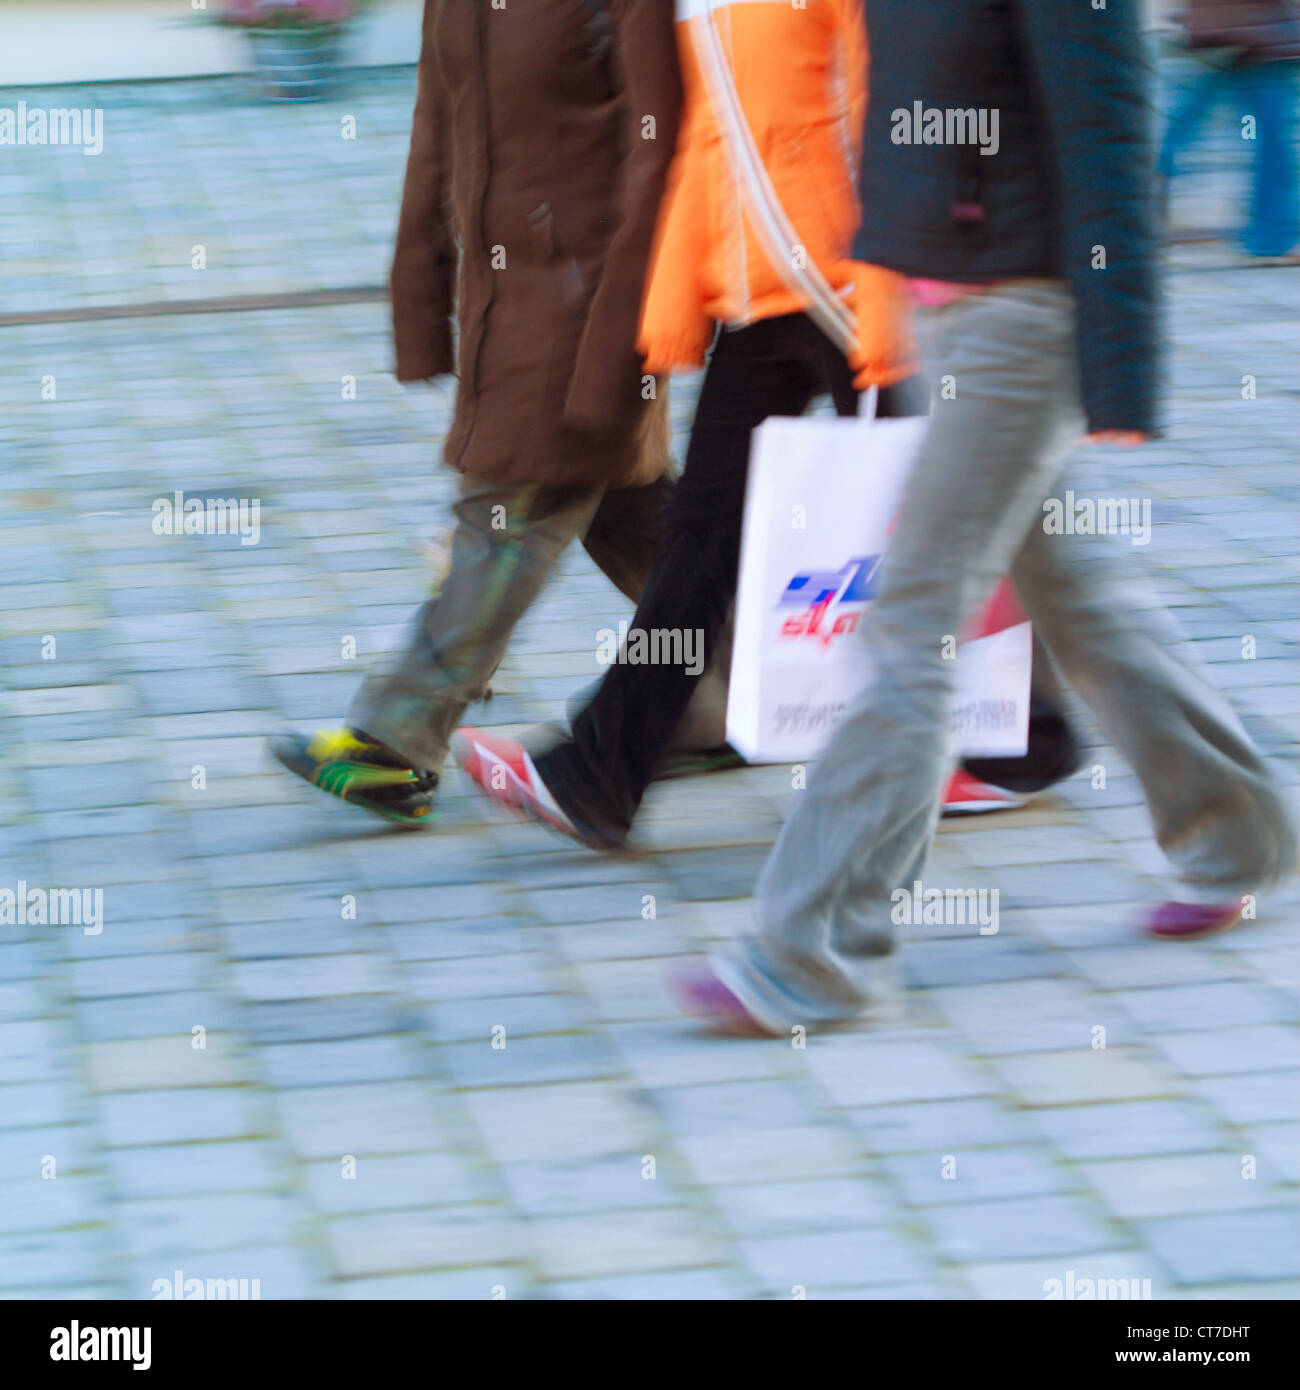 Passerby Stock Photo